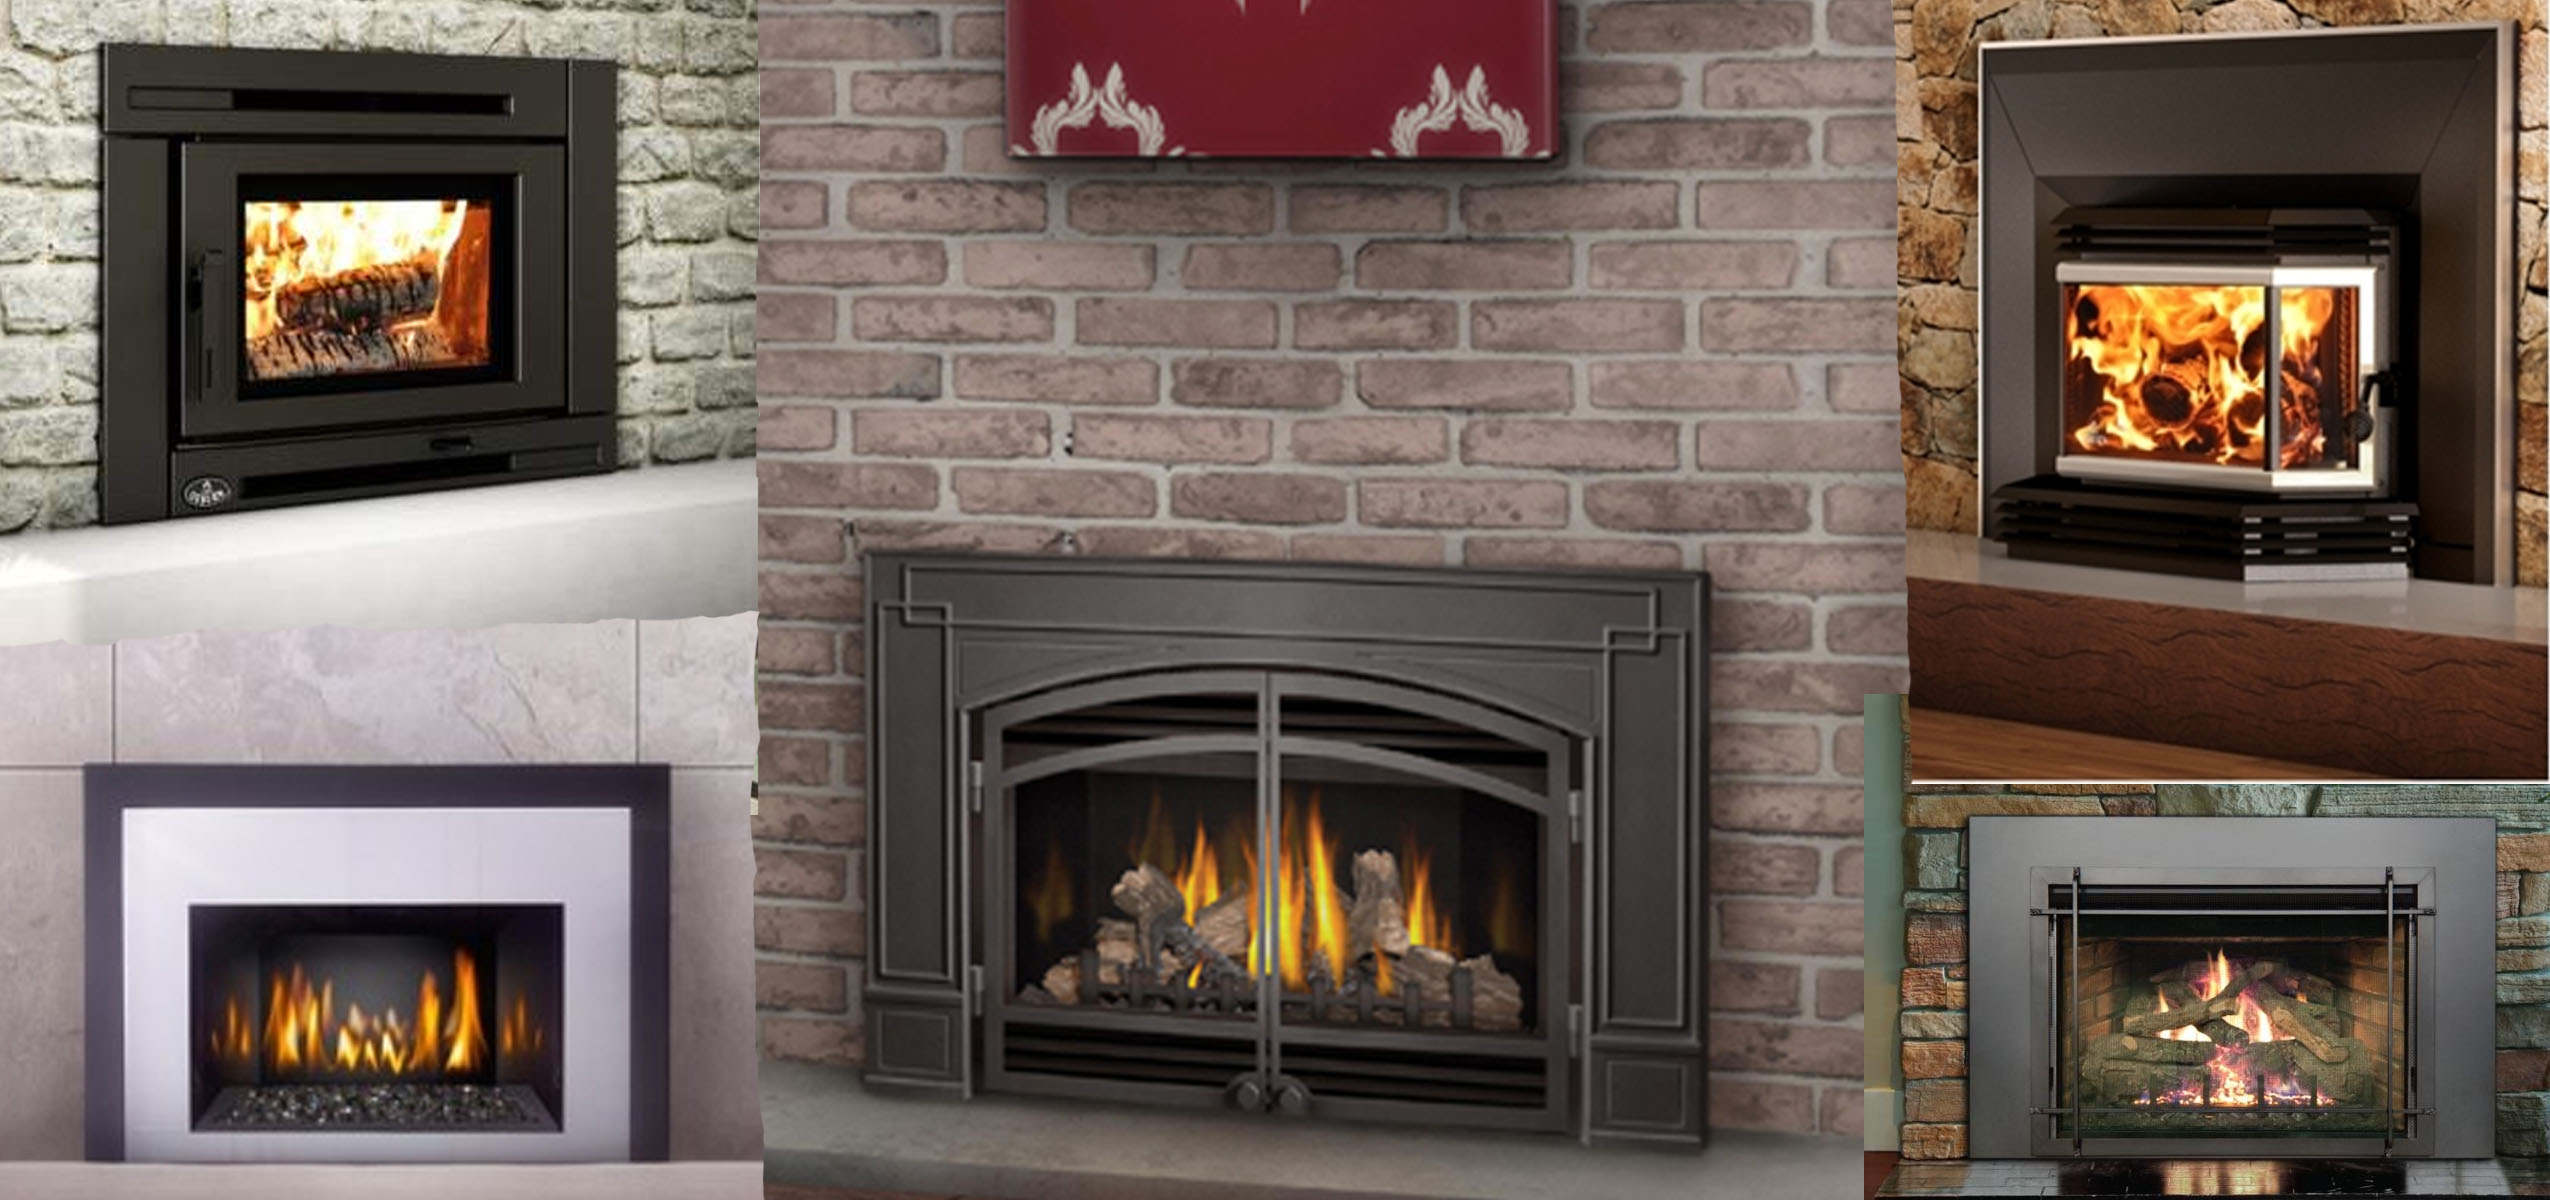 Fireplaces, Fireplace Inserts and Stoves